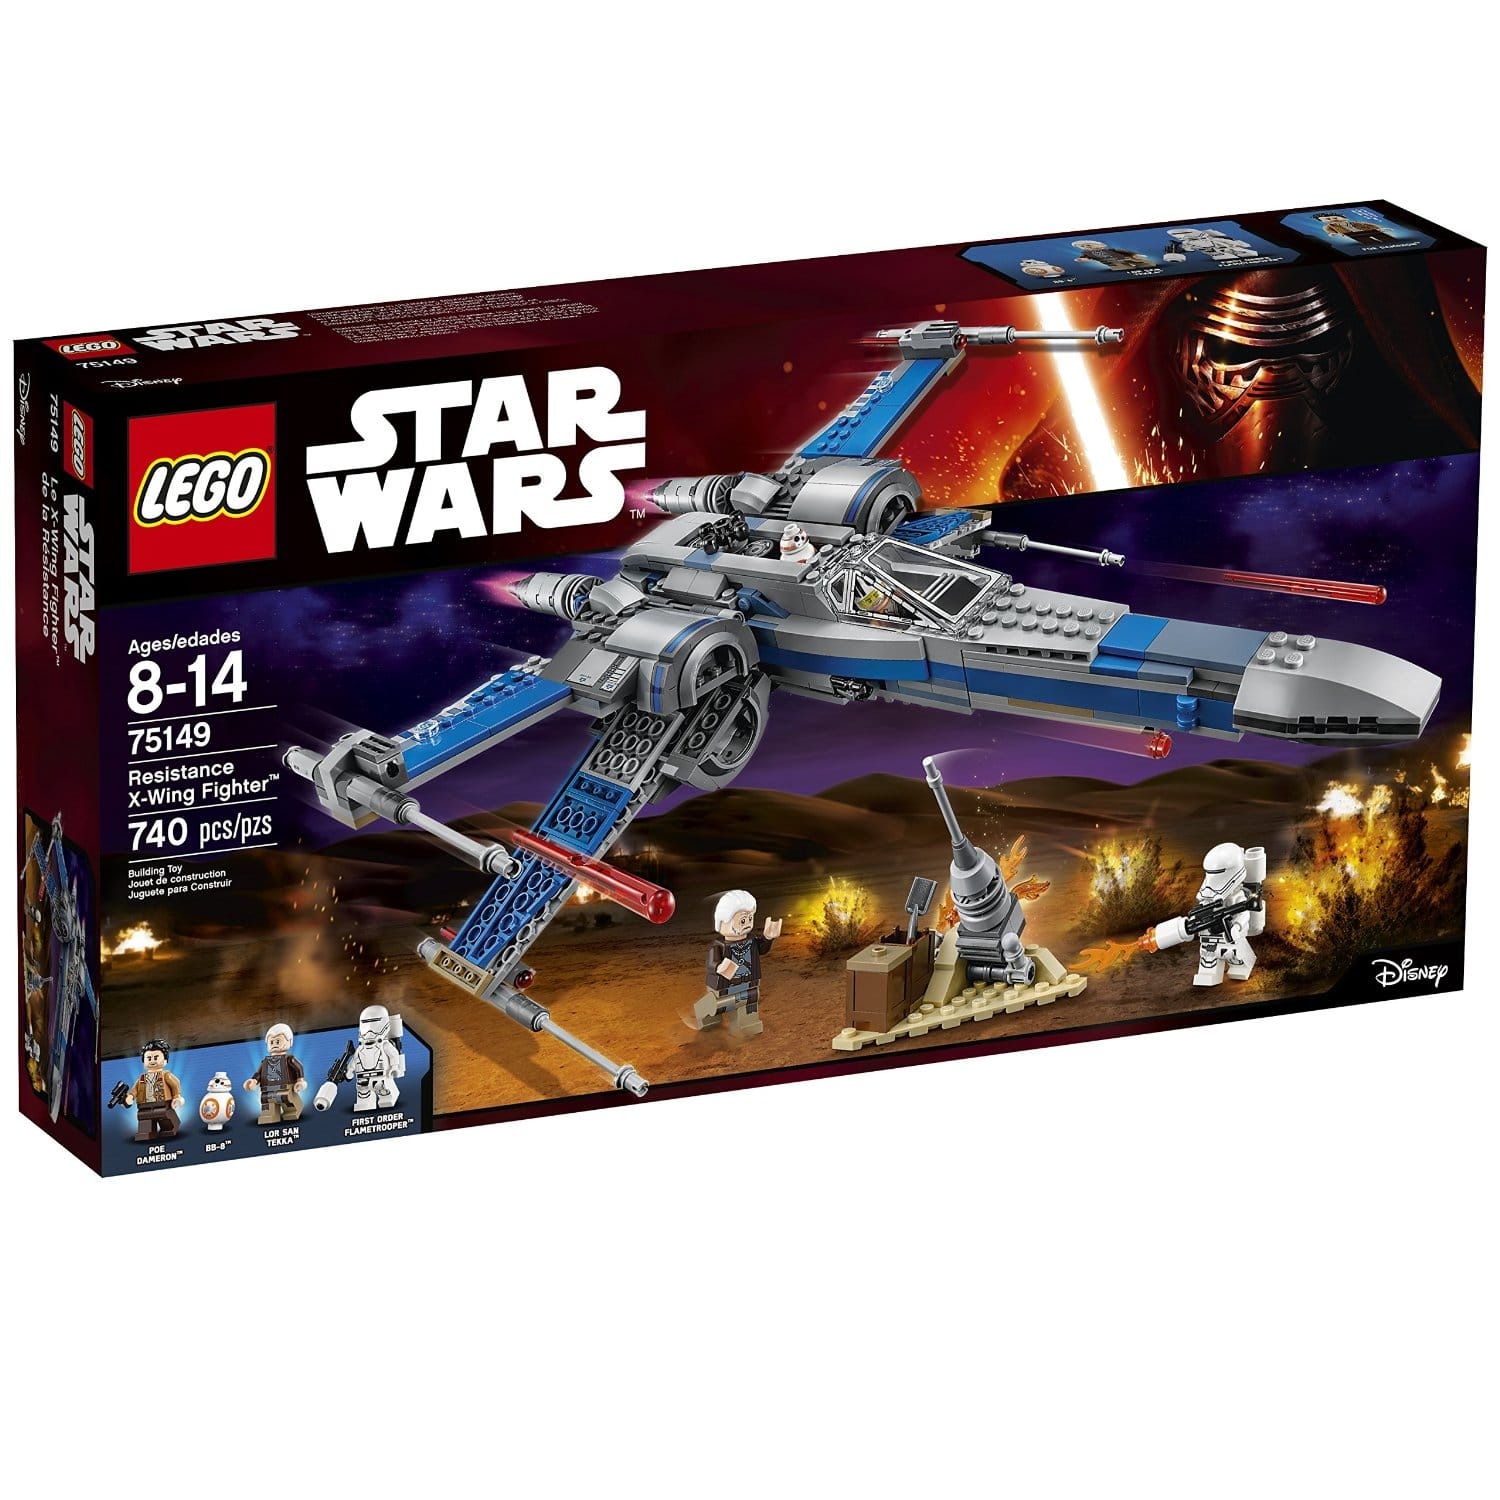 LEGO Star Wars Resistance XWing Fighter Review